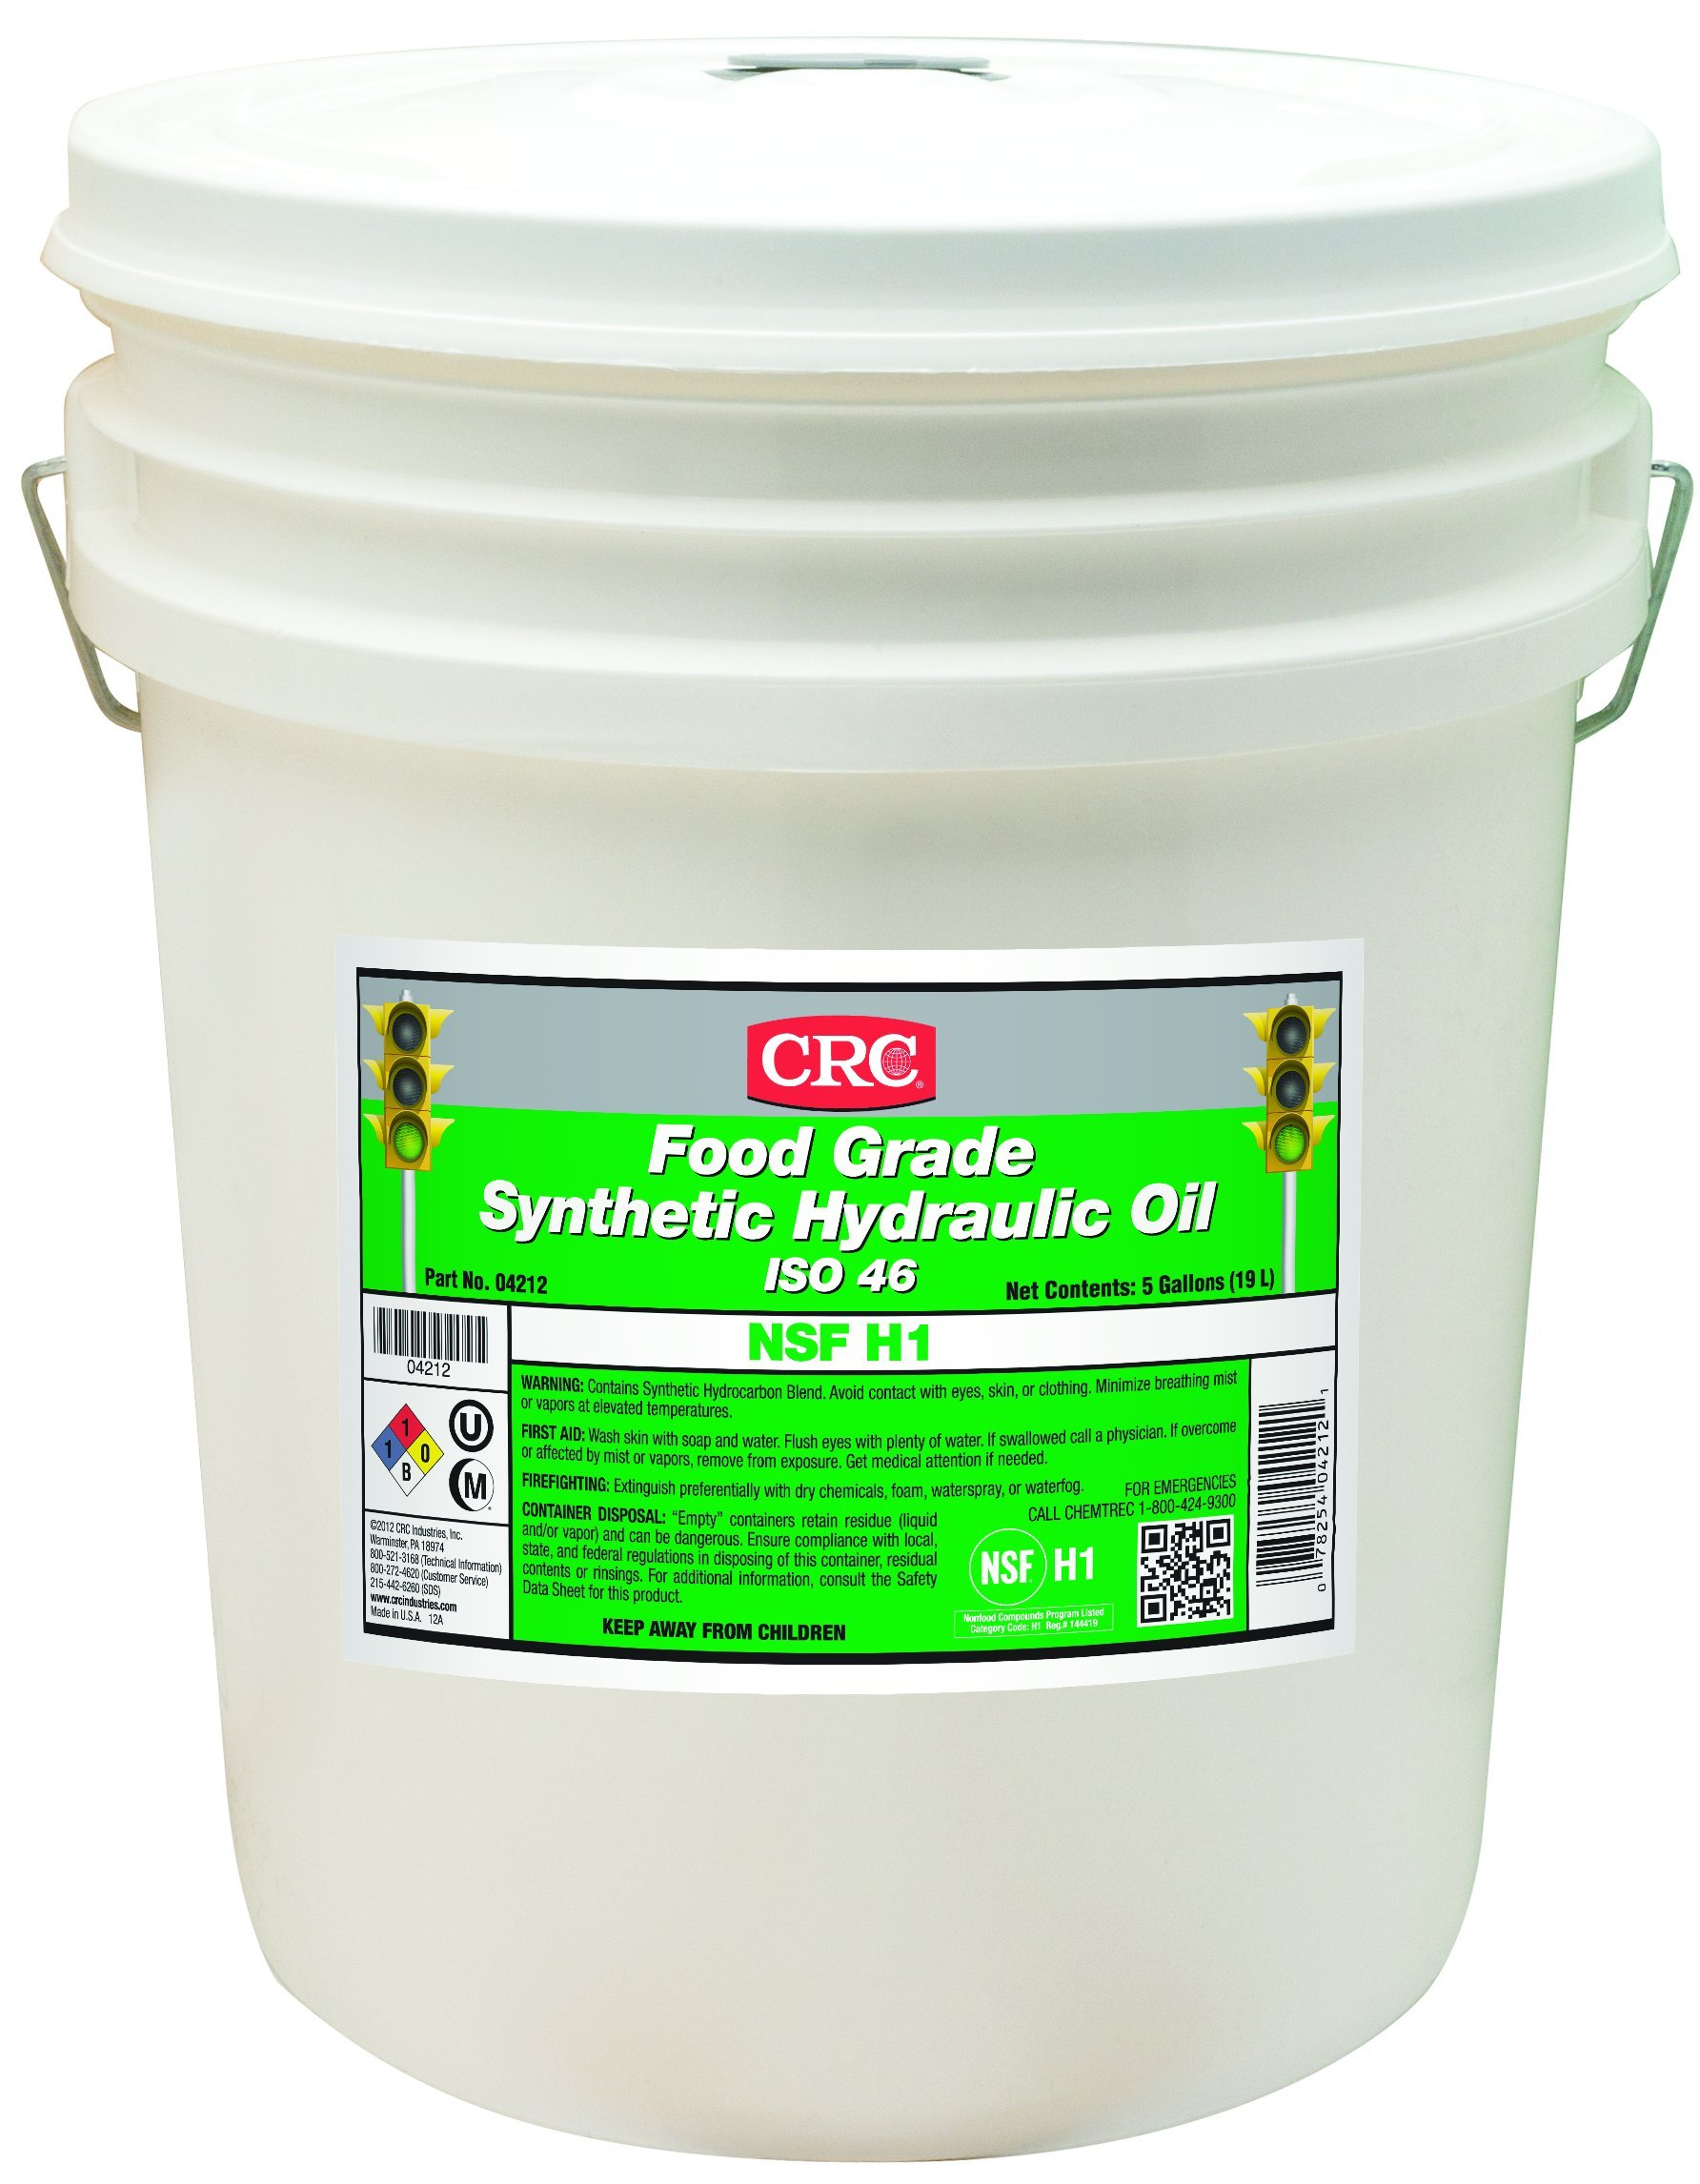 CRC Food Grade Synthetic Hydraulic Oil, -50 to 450 Degrees F Temperature Range, 5 Gallon Pail, ISO 46